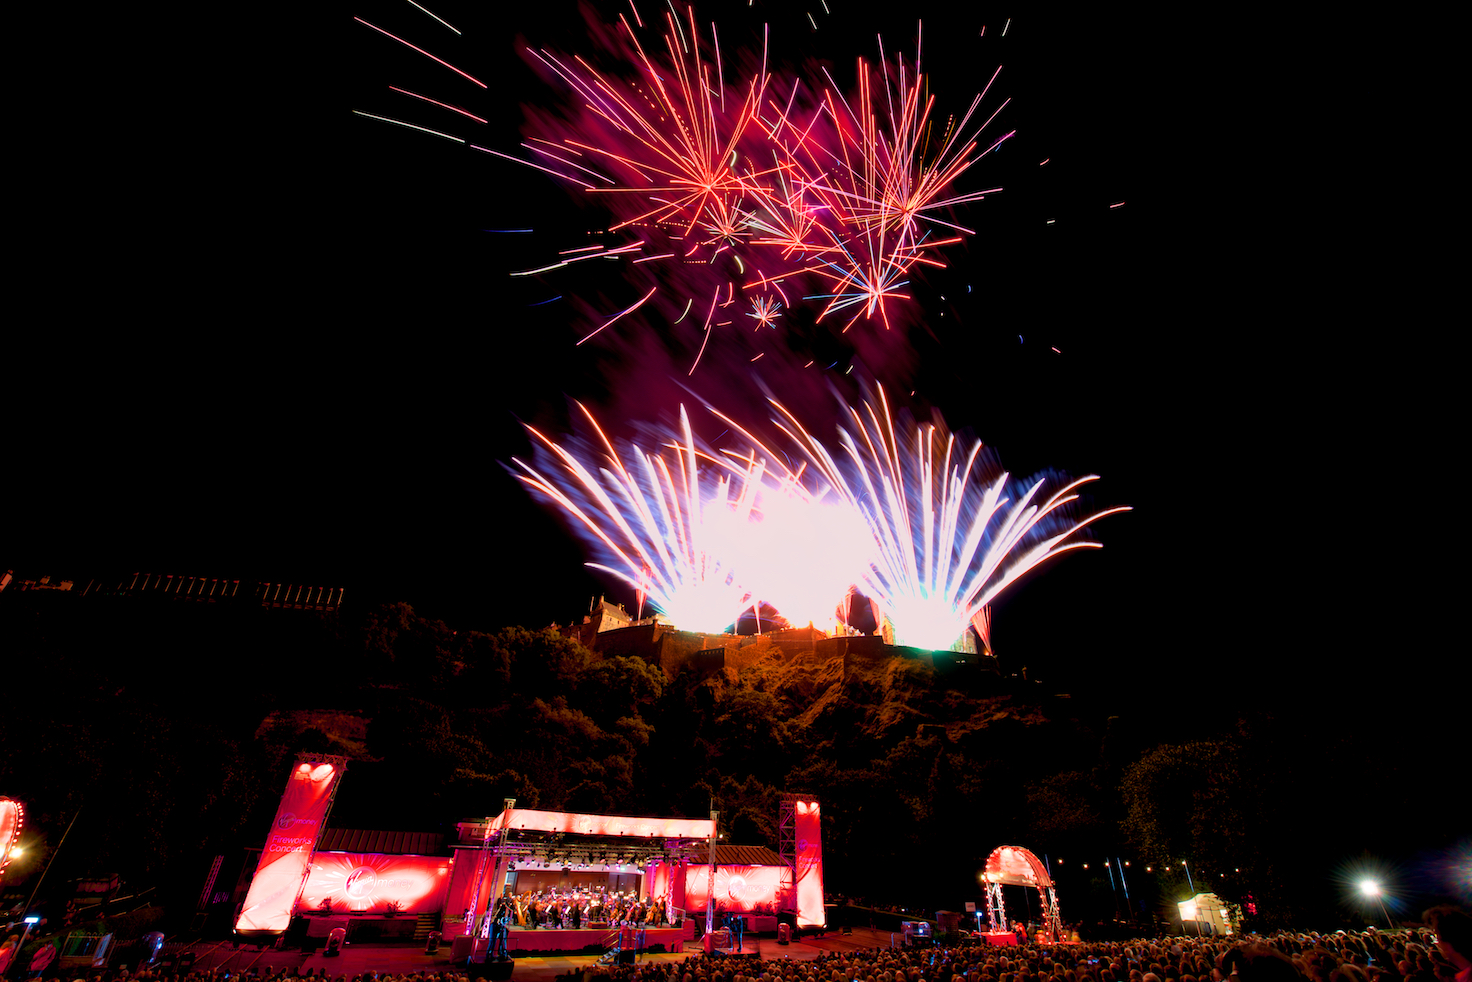 virgin-money-fireworks-concert-edinburgh-castleedinburgh-international-festival-edinburgh-castle-29th-august-2016